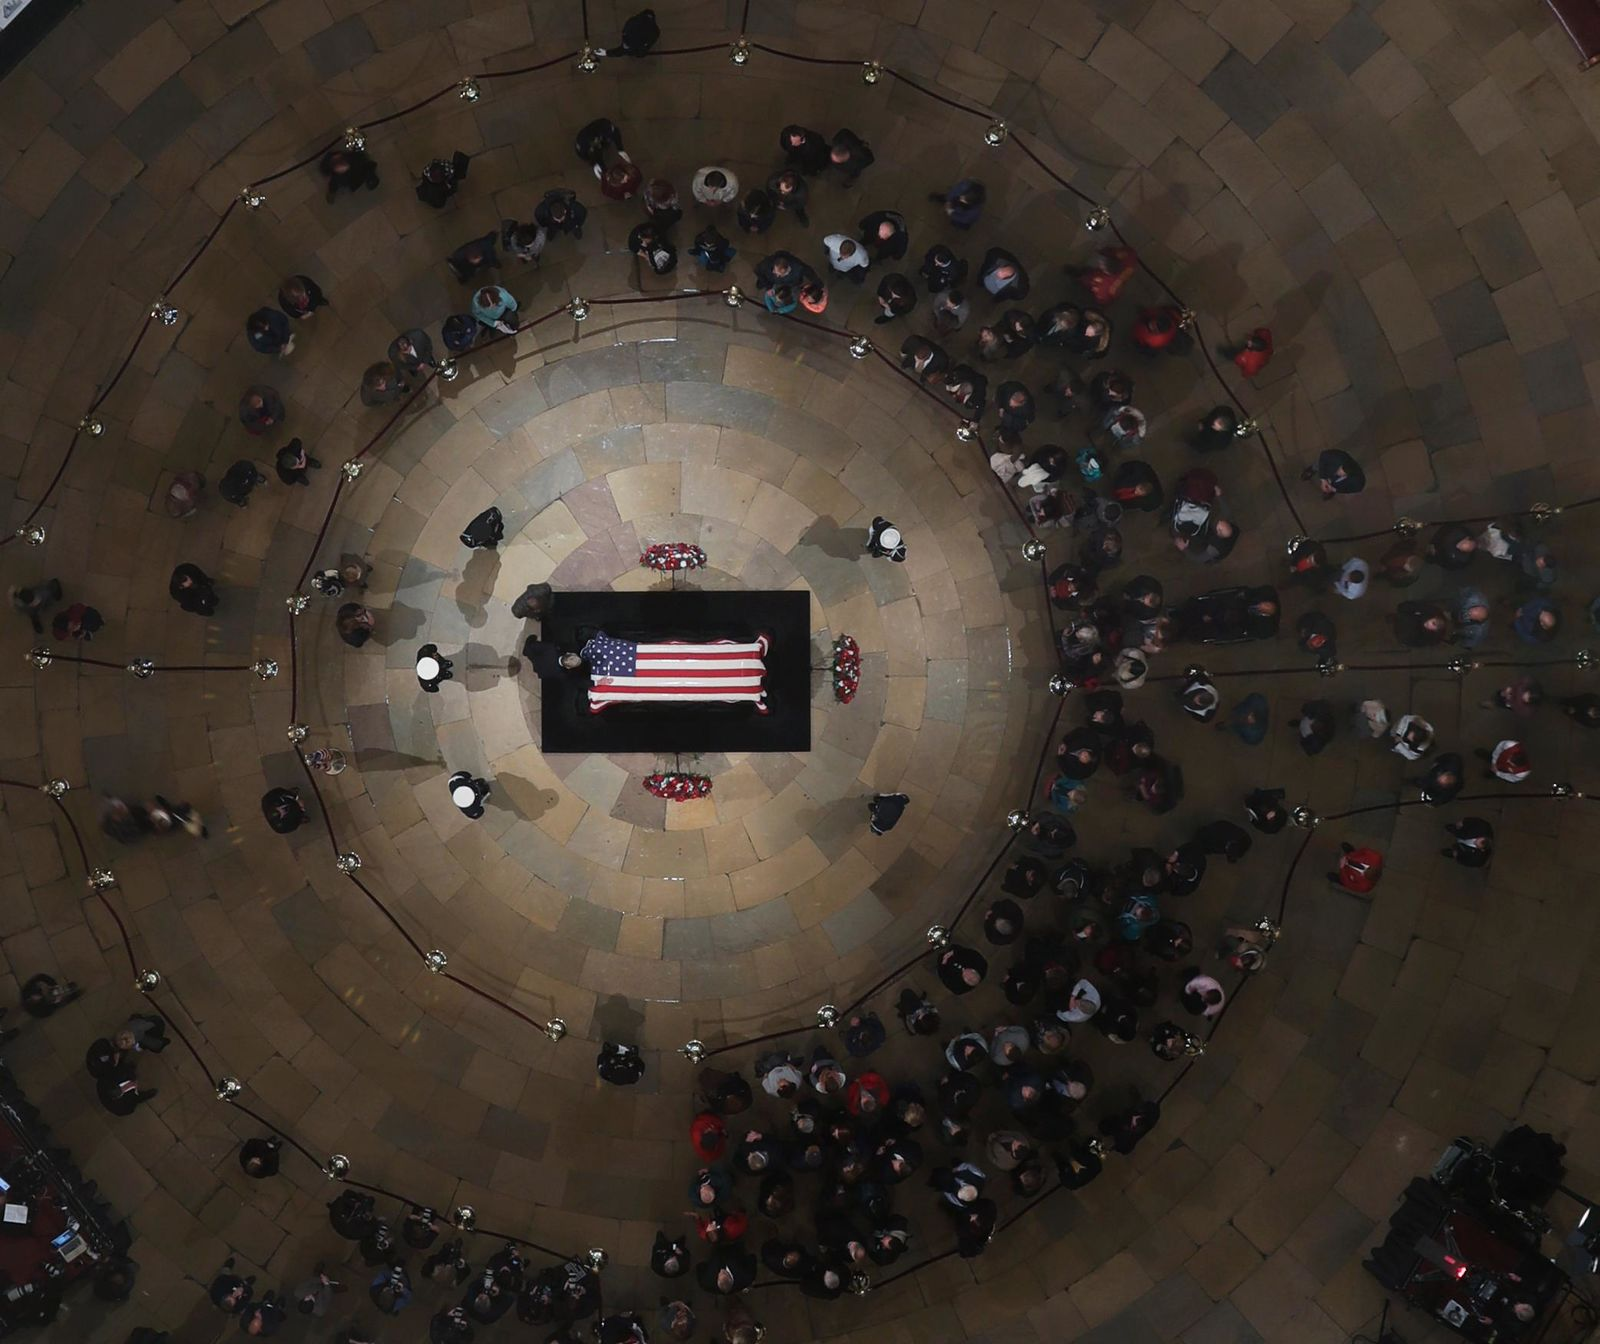 A mourner puts a hand on the flag-draped casket of former President George H. W. Bush as he lies in state in the U.S. Capitol Rotunda Tuesday, Dec. 4, 2018, in Washington. (Pool photo by Morry Gash via AP)